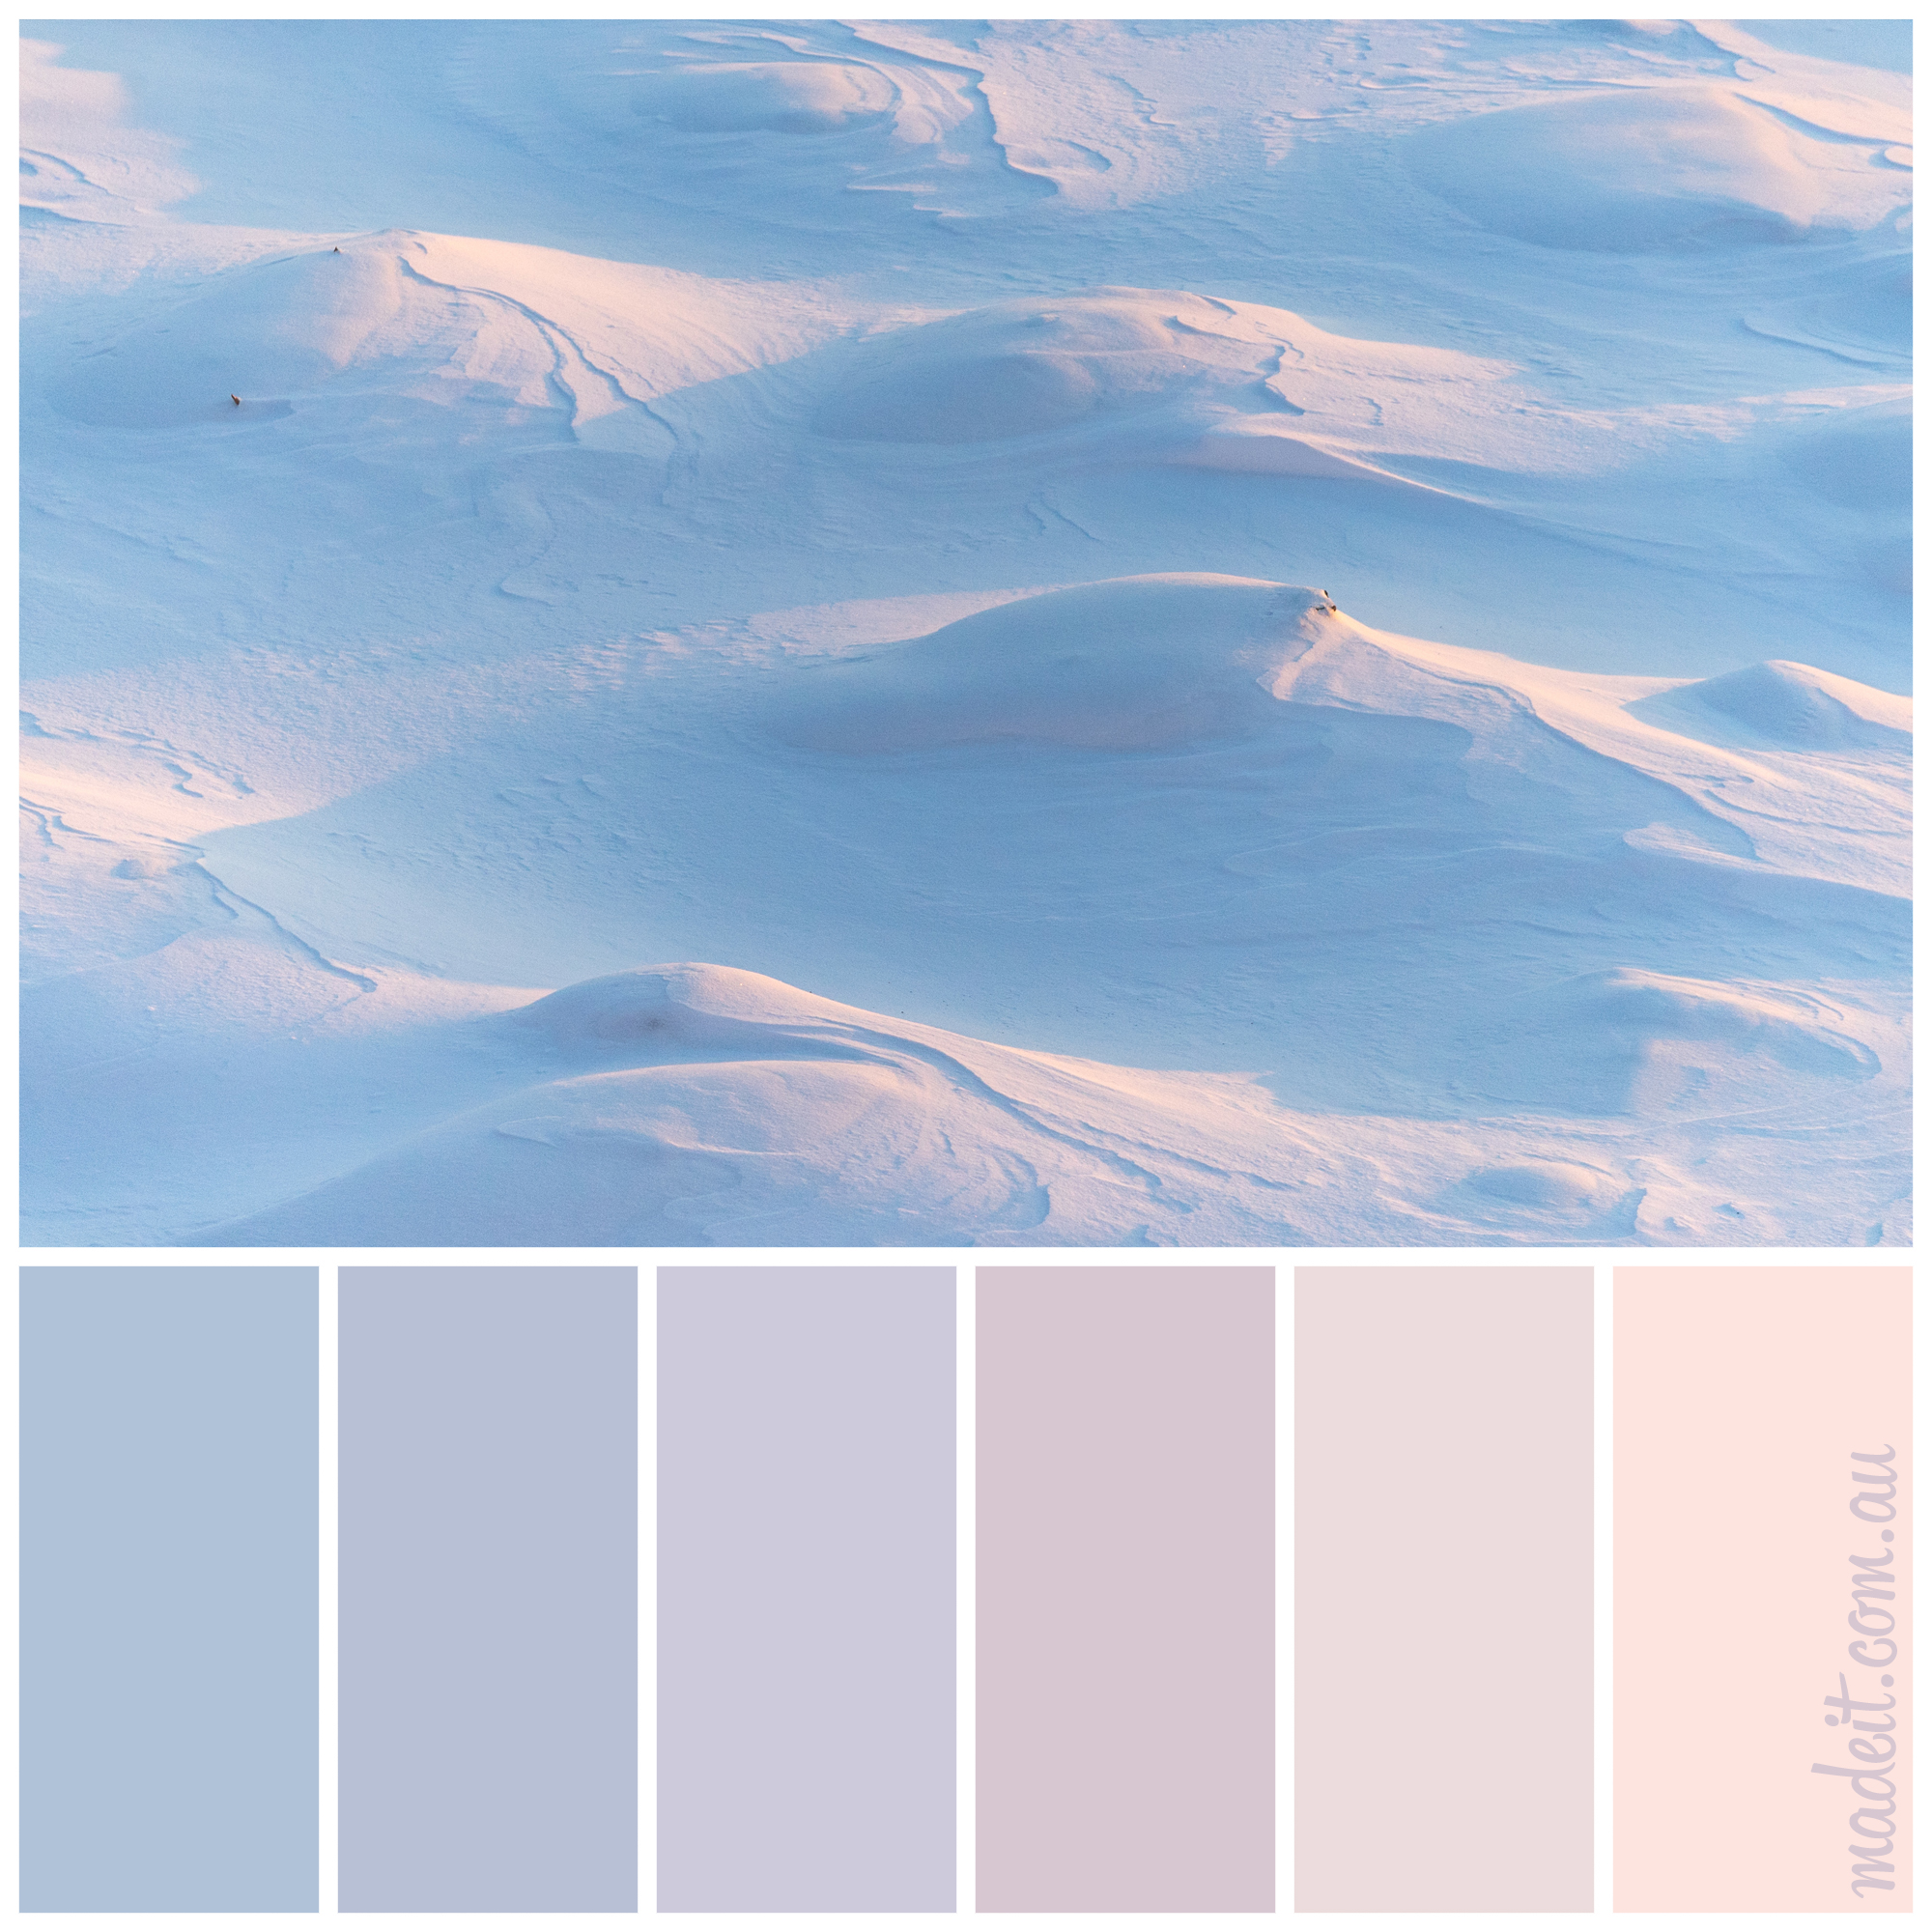 Landscape colour inspiration: rolling sand dunes painted pastel by the sunrise